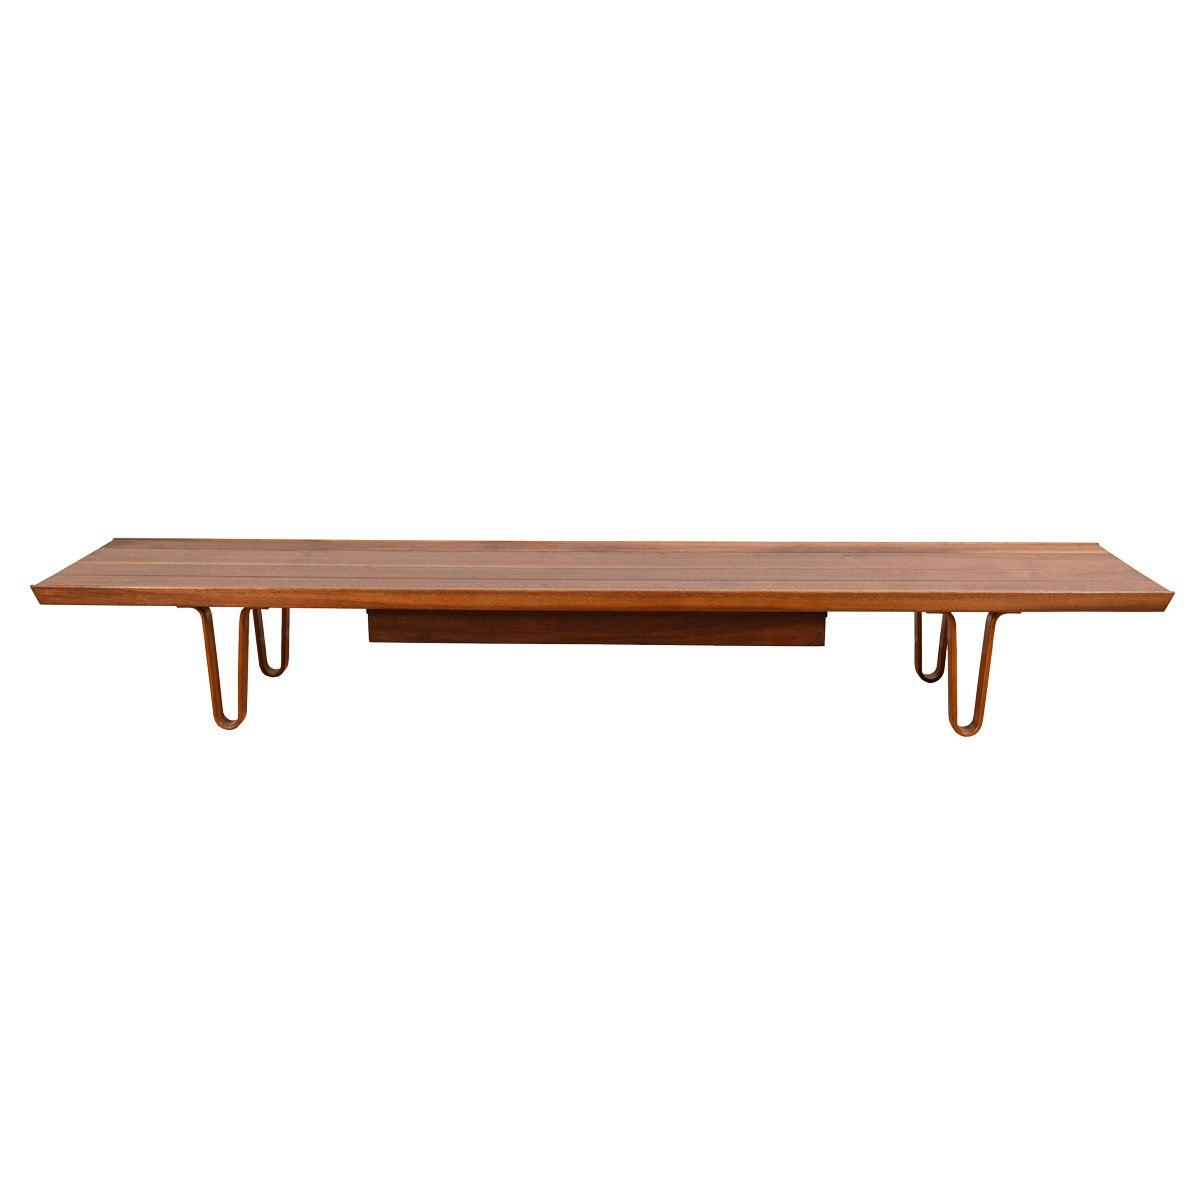 "Super ""Long-John"" 84″ Coffee Table / Bench with Drawer by Edward Wormley for Dunbar"